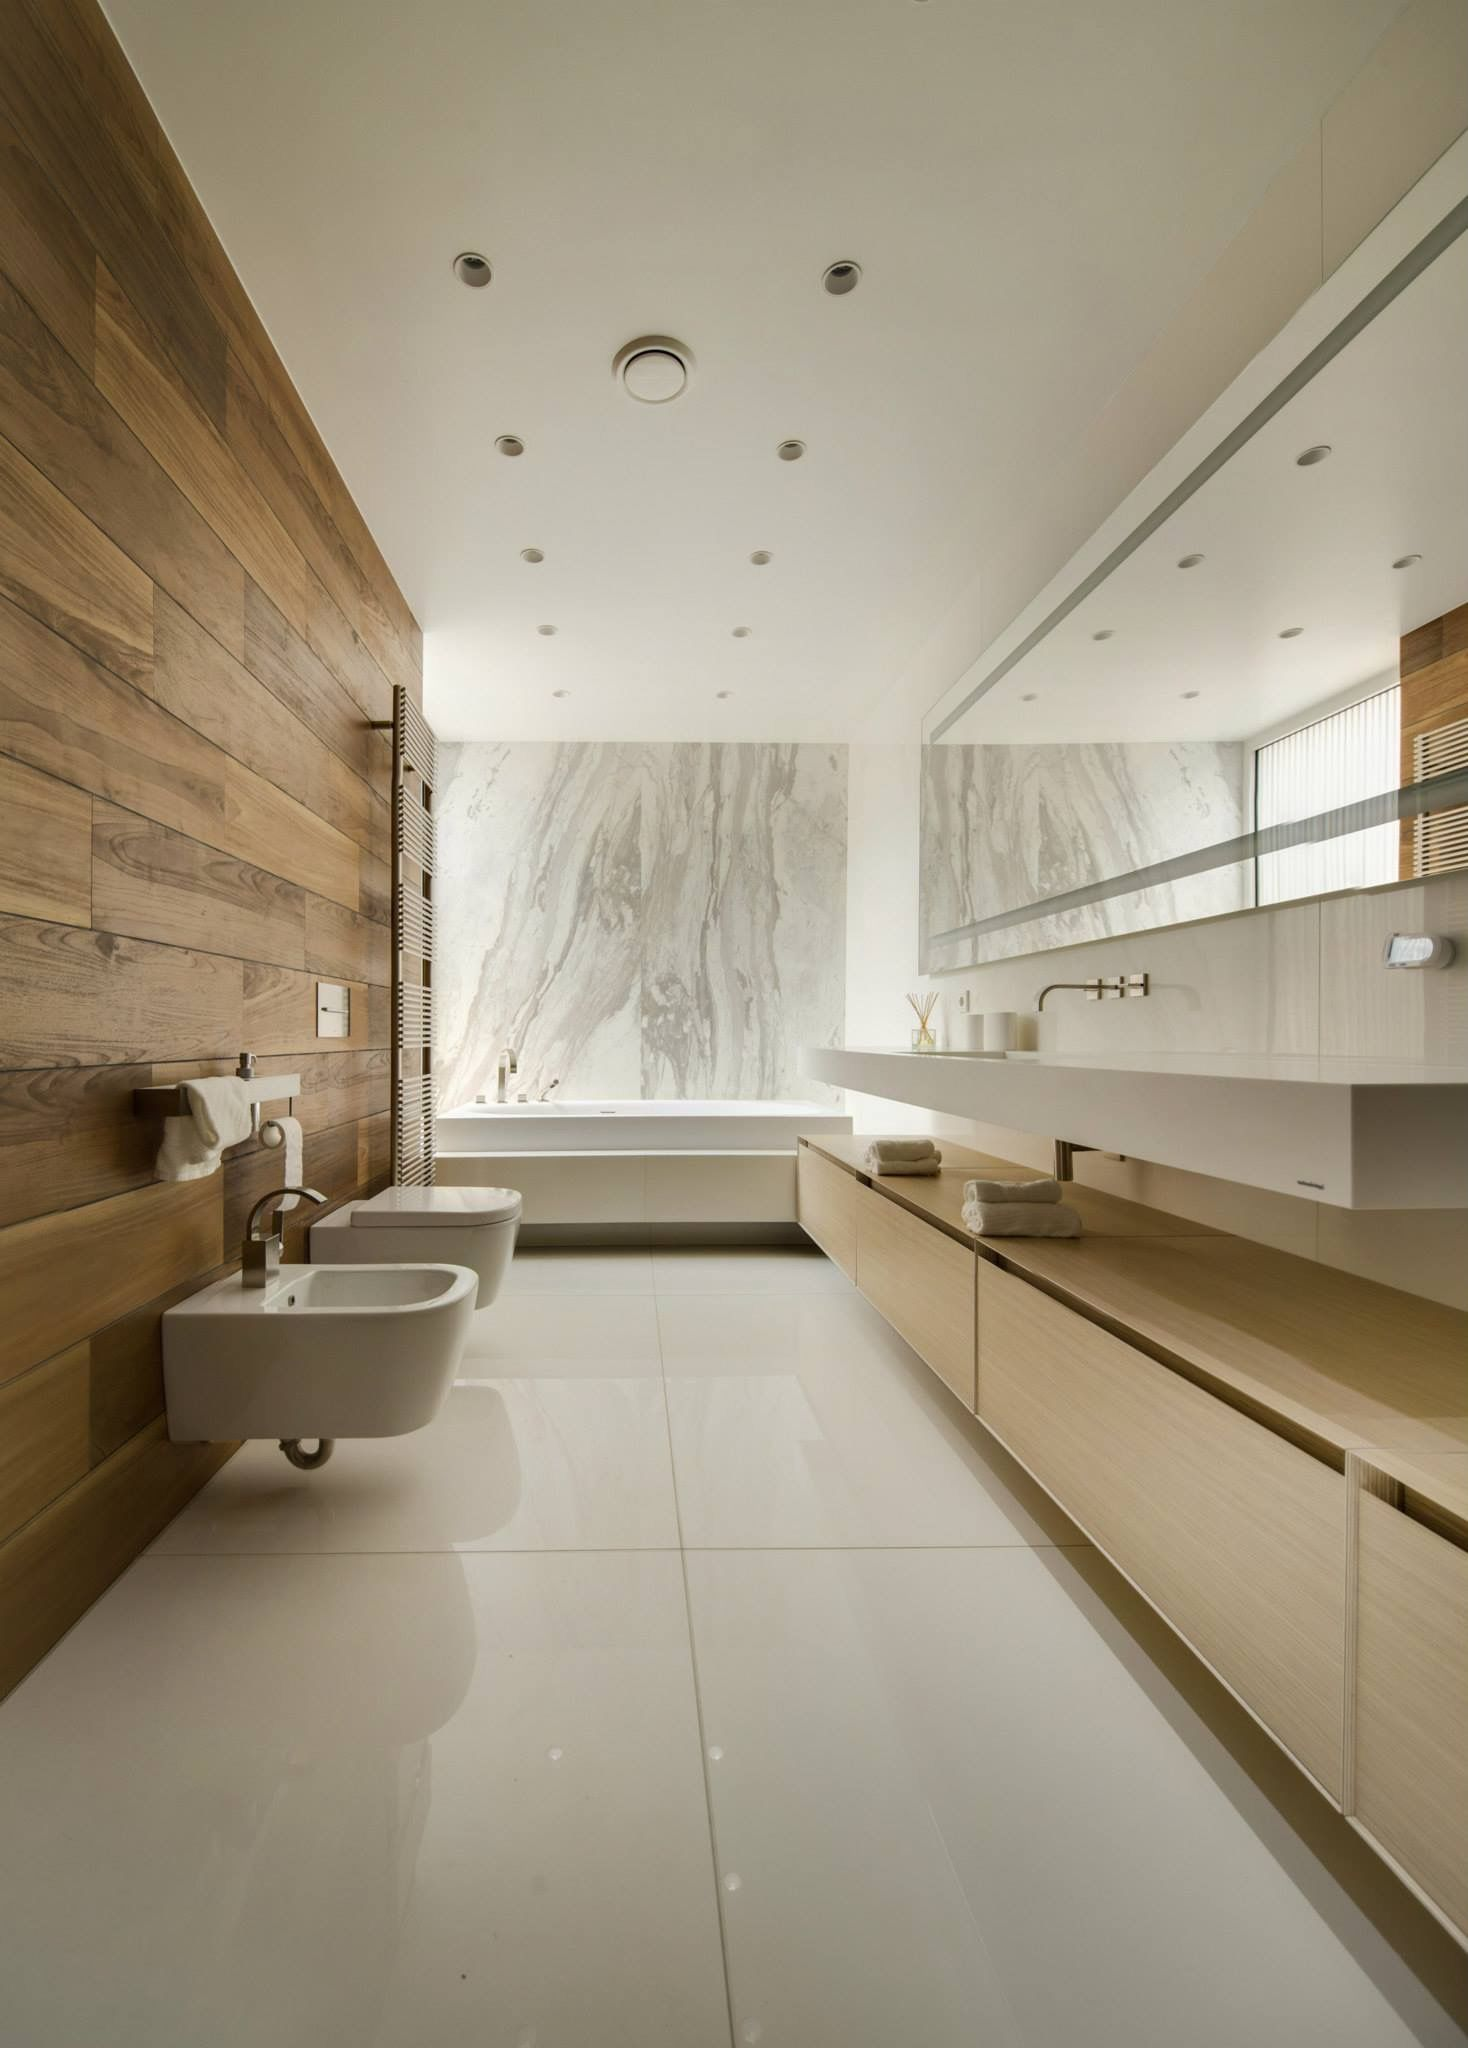 Home interiors bathroom - What Is The Role Of The Bathroom In The Modern Home Whether It S A Basic Functional Space Or A Luxury Living Bathroom A Sort Of Home Spa The Bathroom